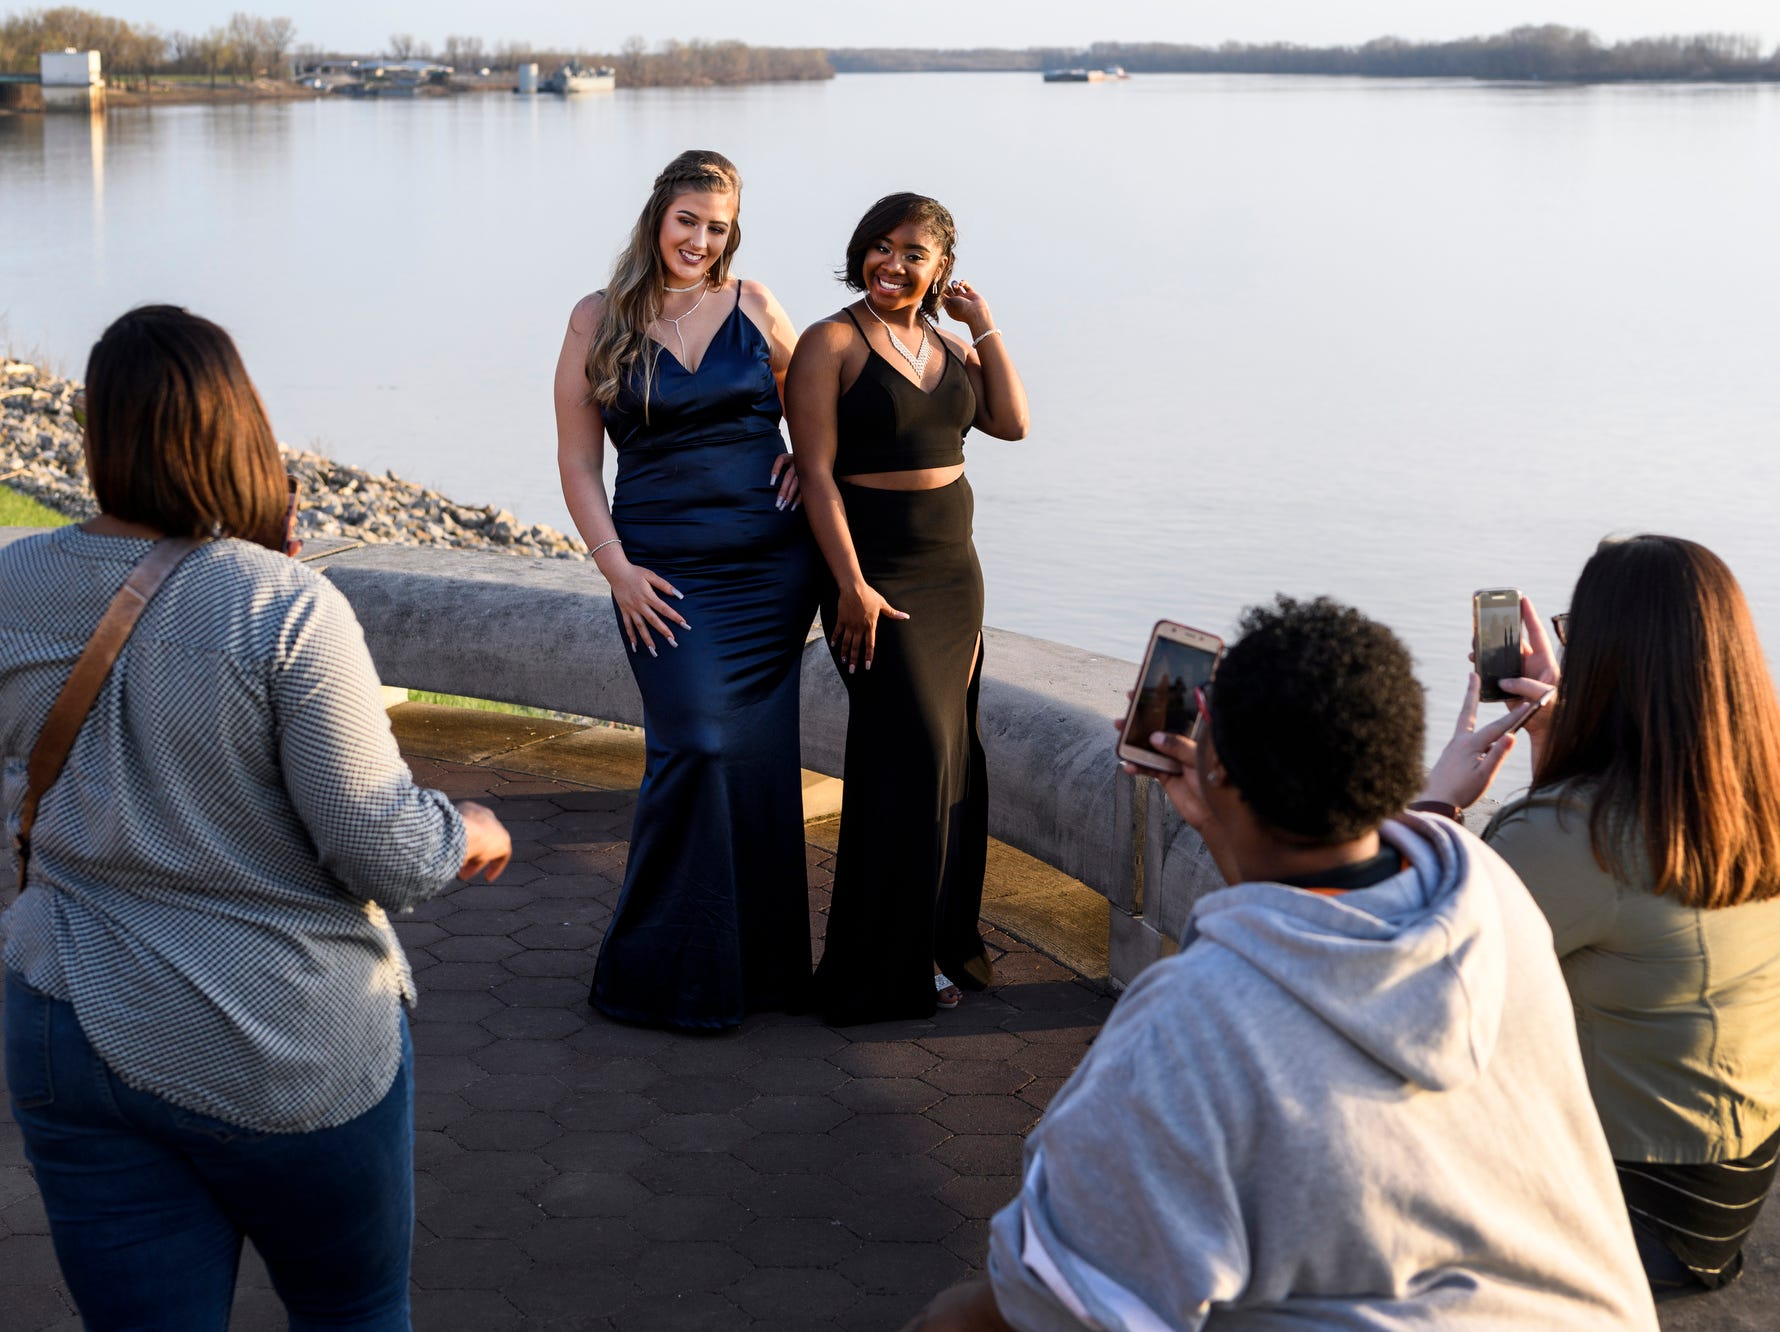 Brittney Evans, center left, and Ayriana Meriwether, center right, use the Ohio River as their backdrop for pictures before going to Bosse High School's prom in downtown Evansville, Saturday, April 6, 2019.